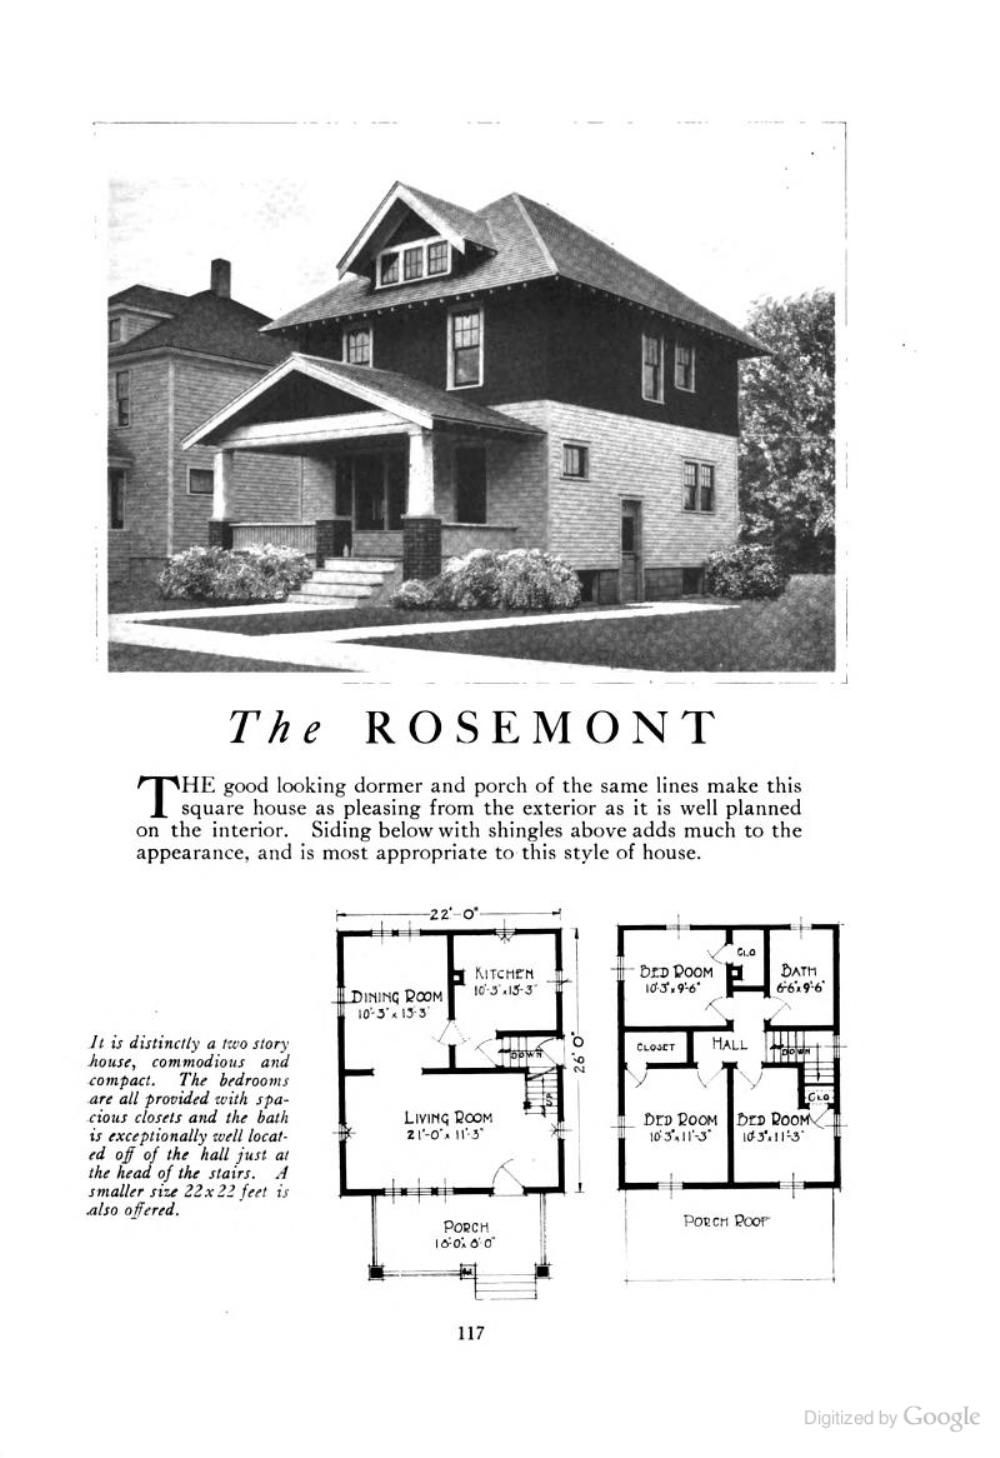 The Rosemont (an American Foursquare kit house/house plan ...